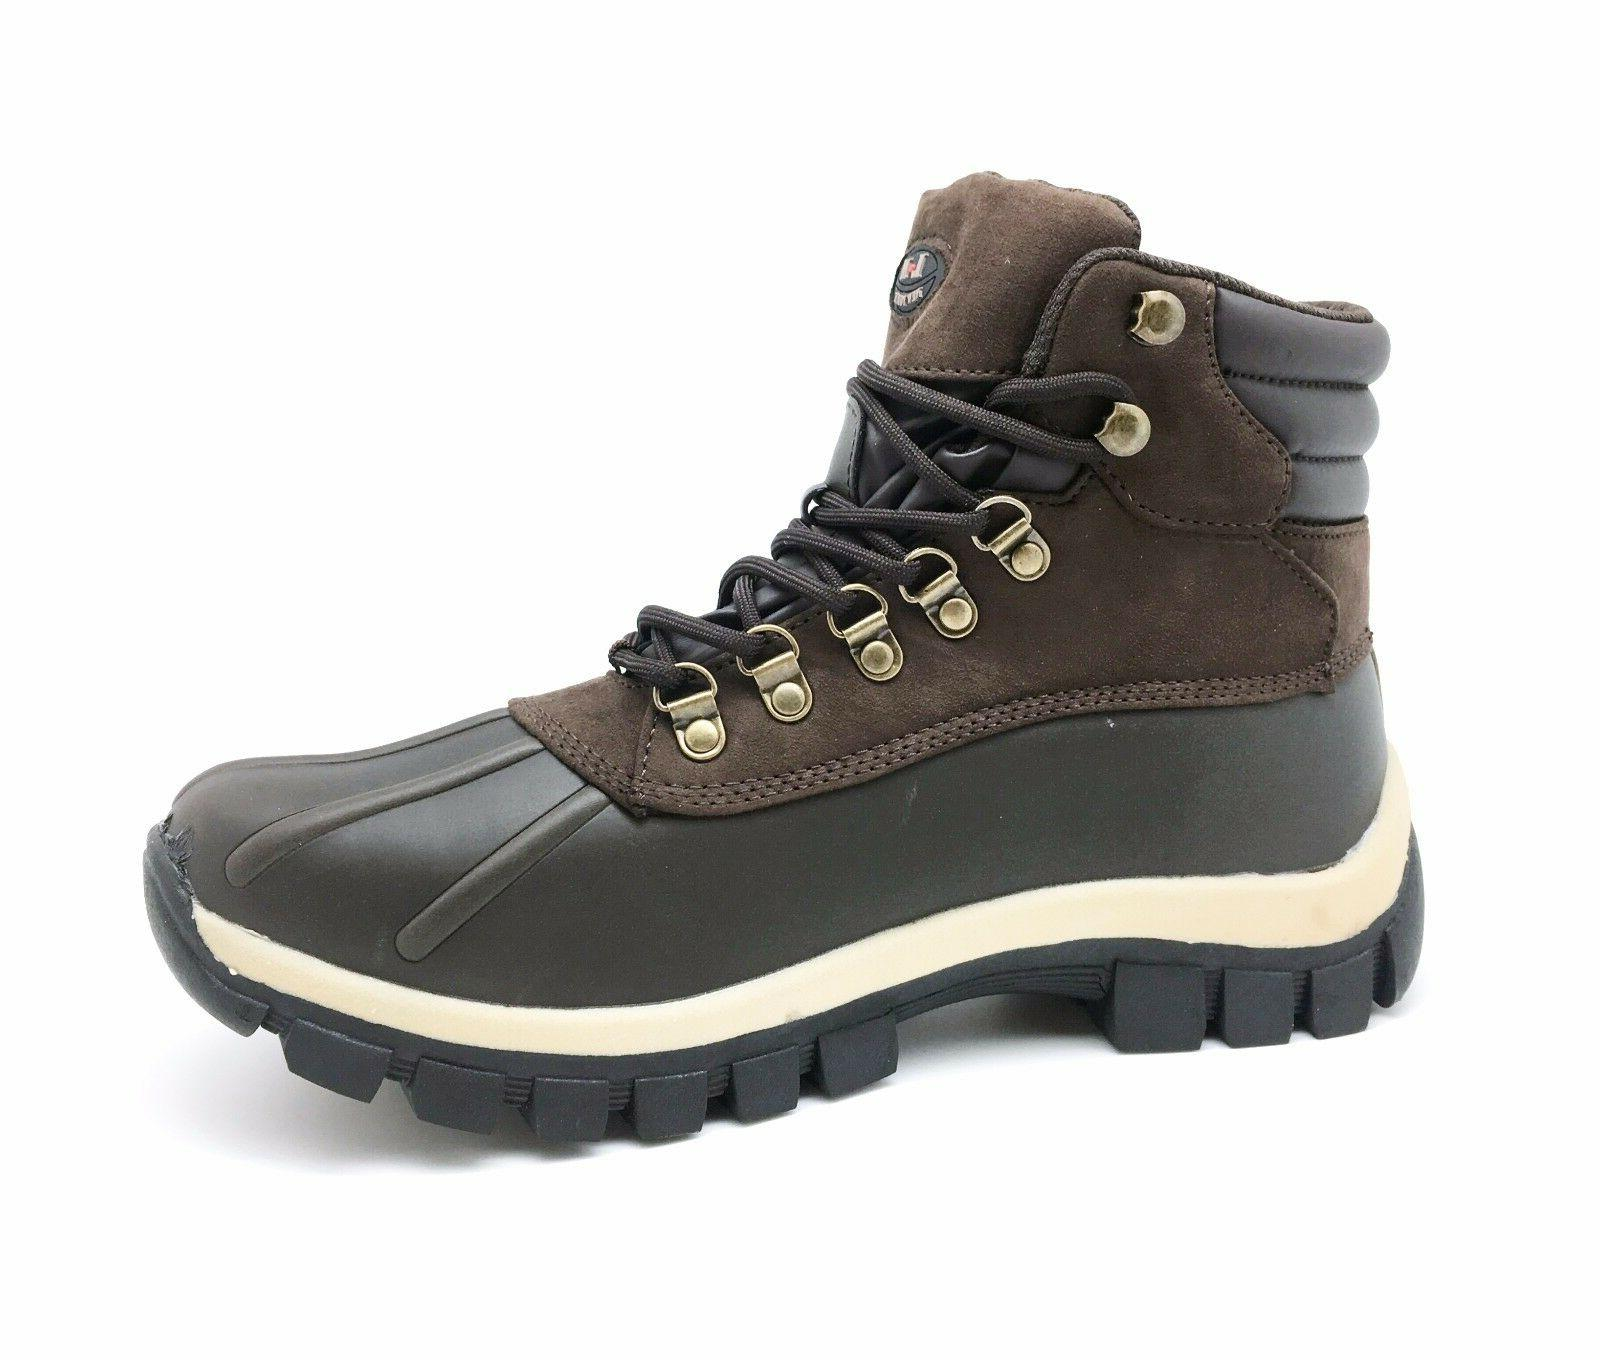 New Winter Boots Men's Work Boots Leather Lace Up 2017